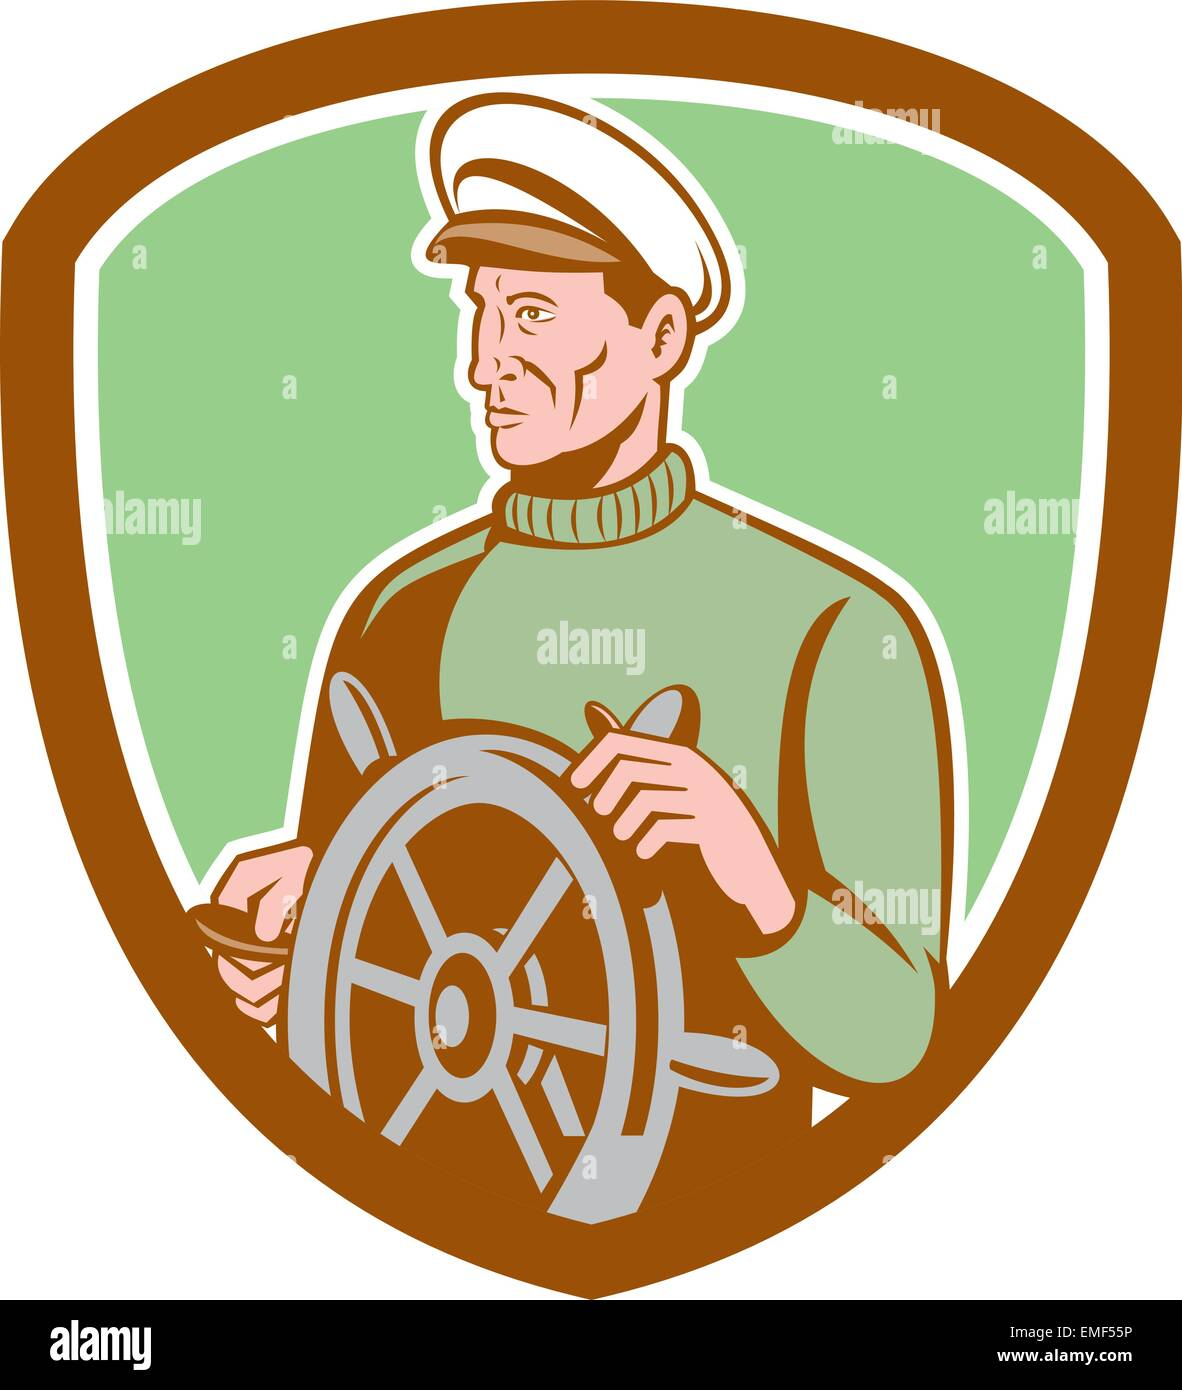 Fisherman Sea Captain Wheel Shield Retro - Stock Image